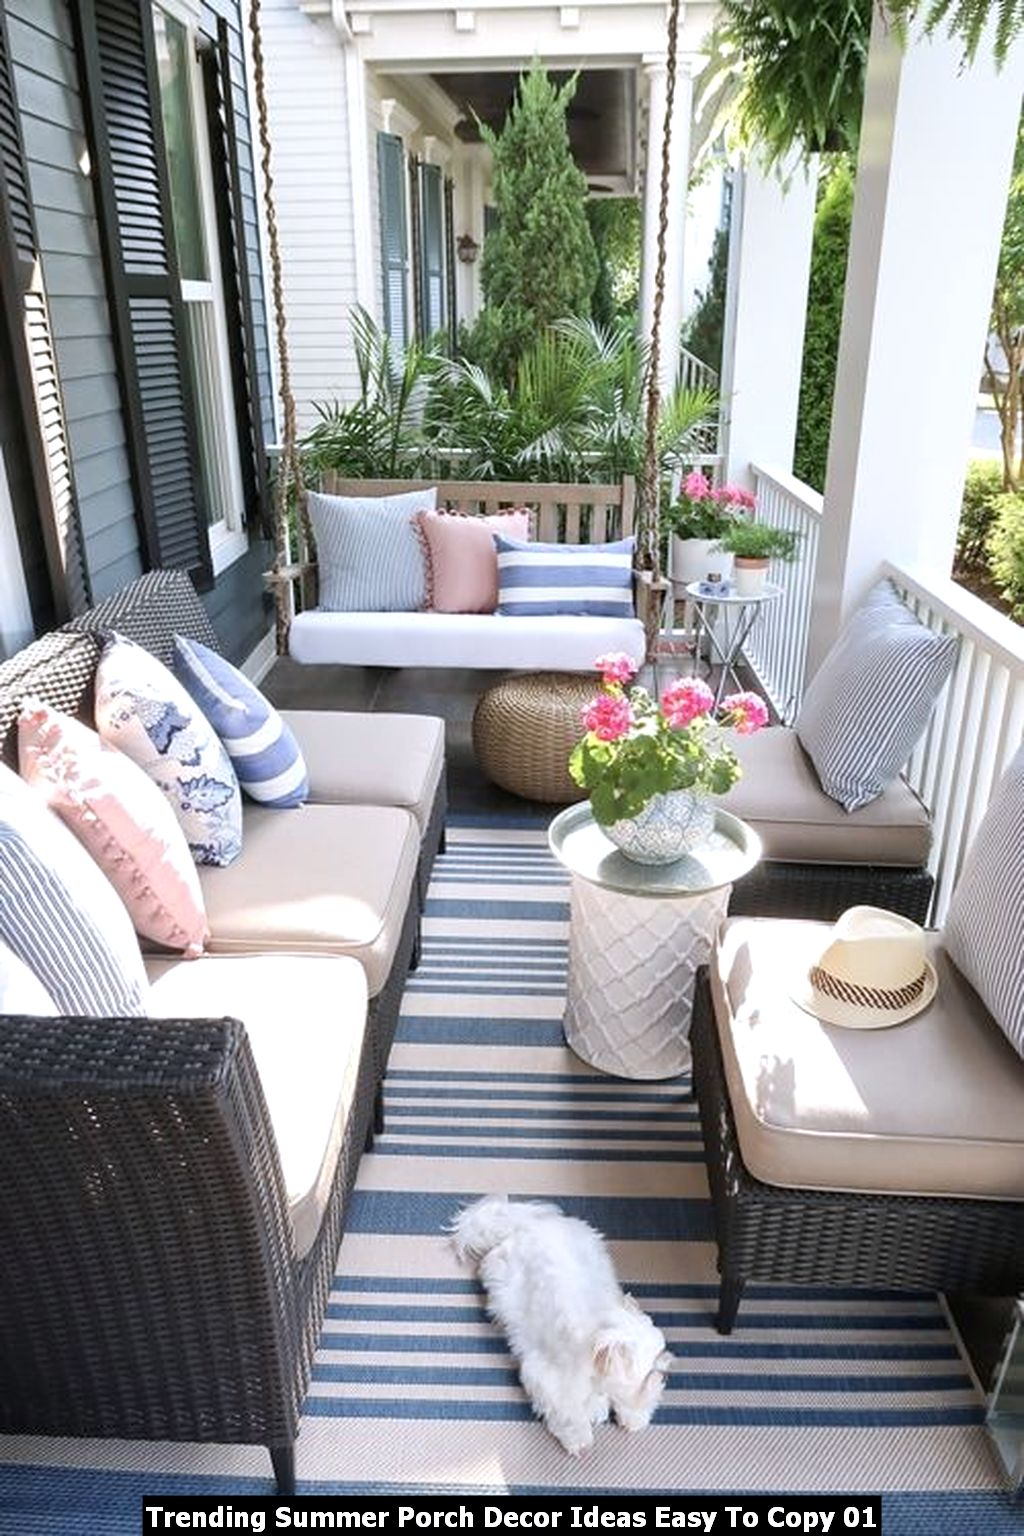 Trending Summer Porch Decor Ideas Easy To Copy 01